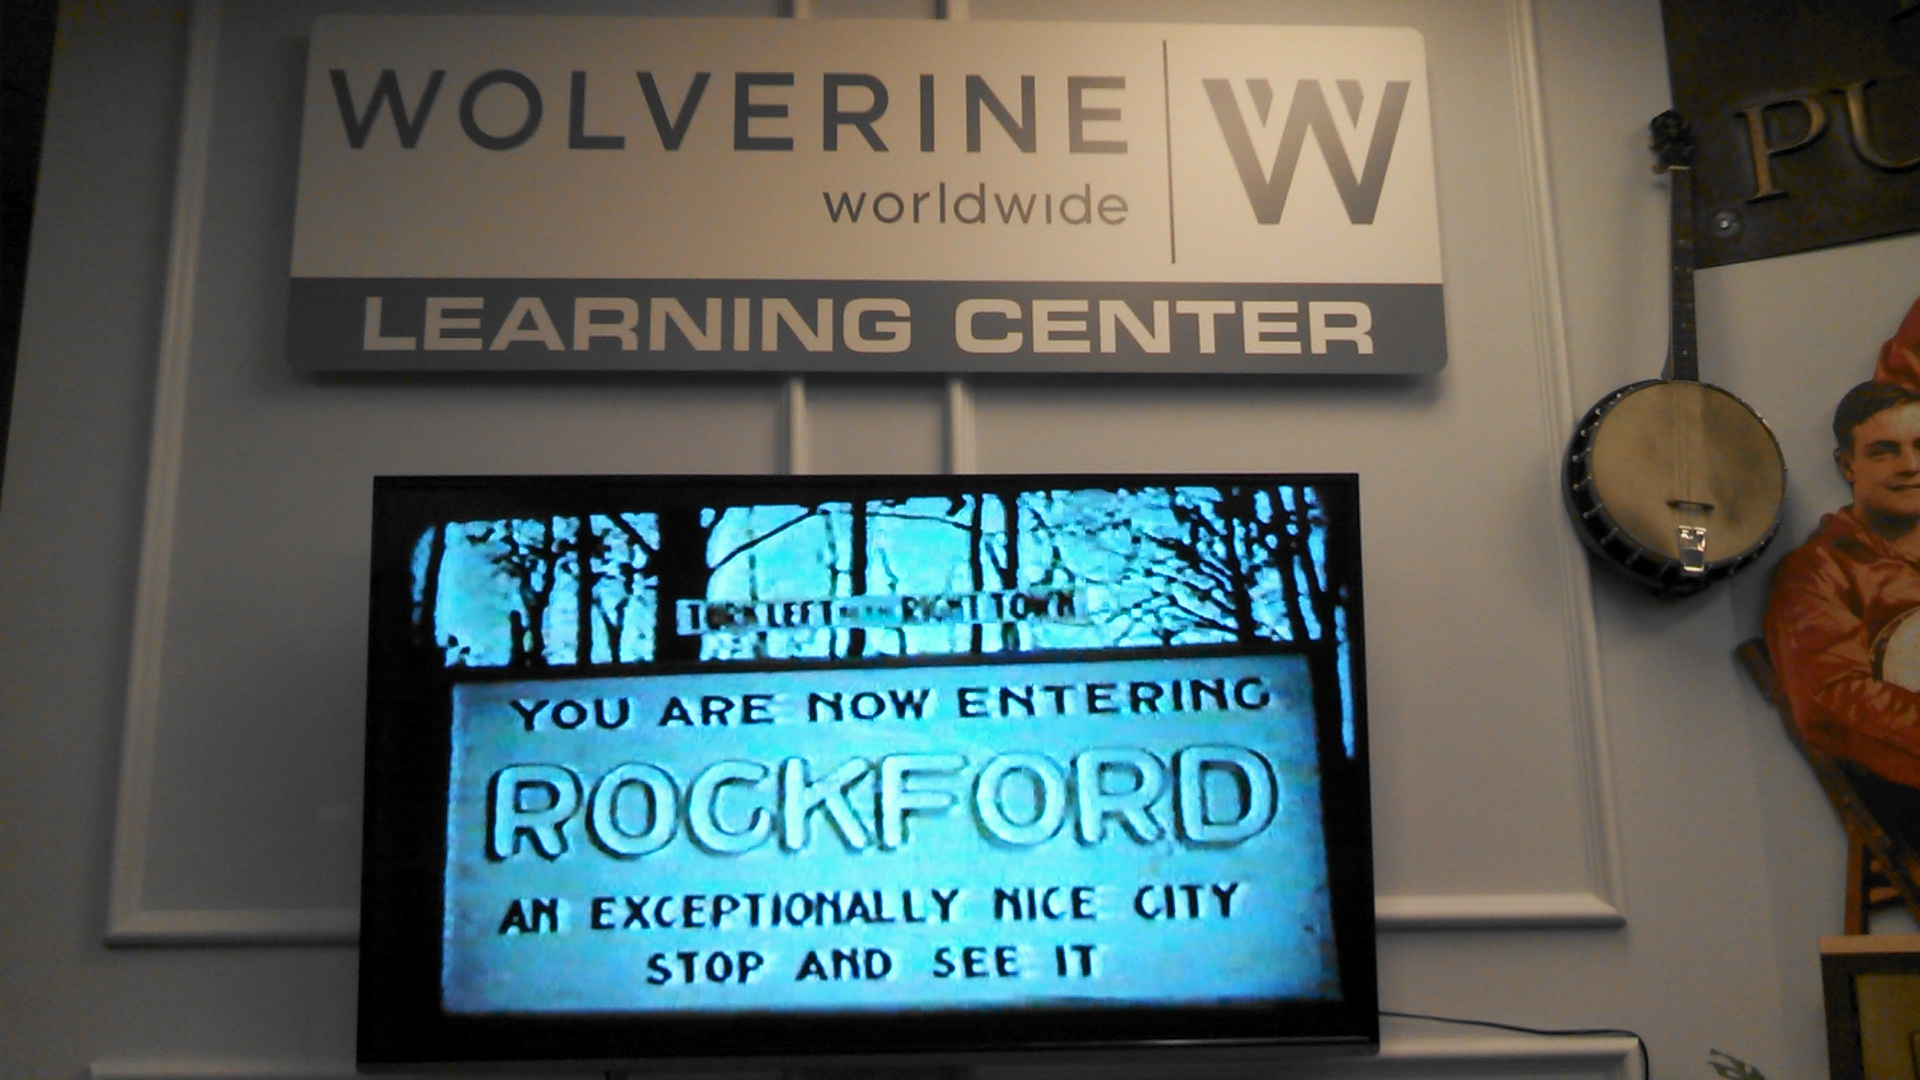 The WWW Learning Center